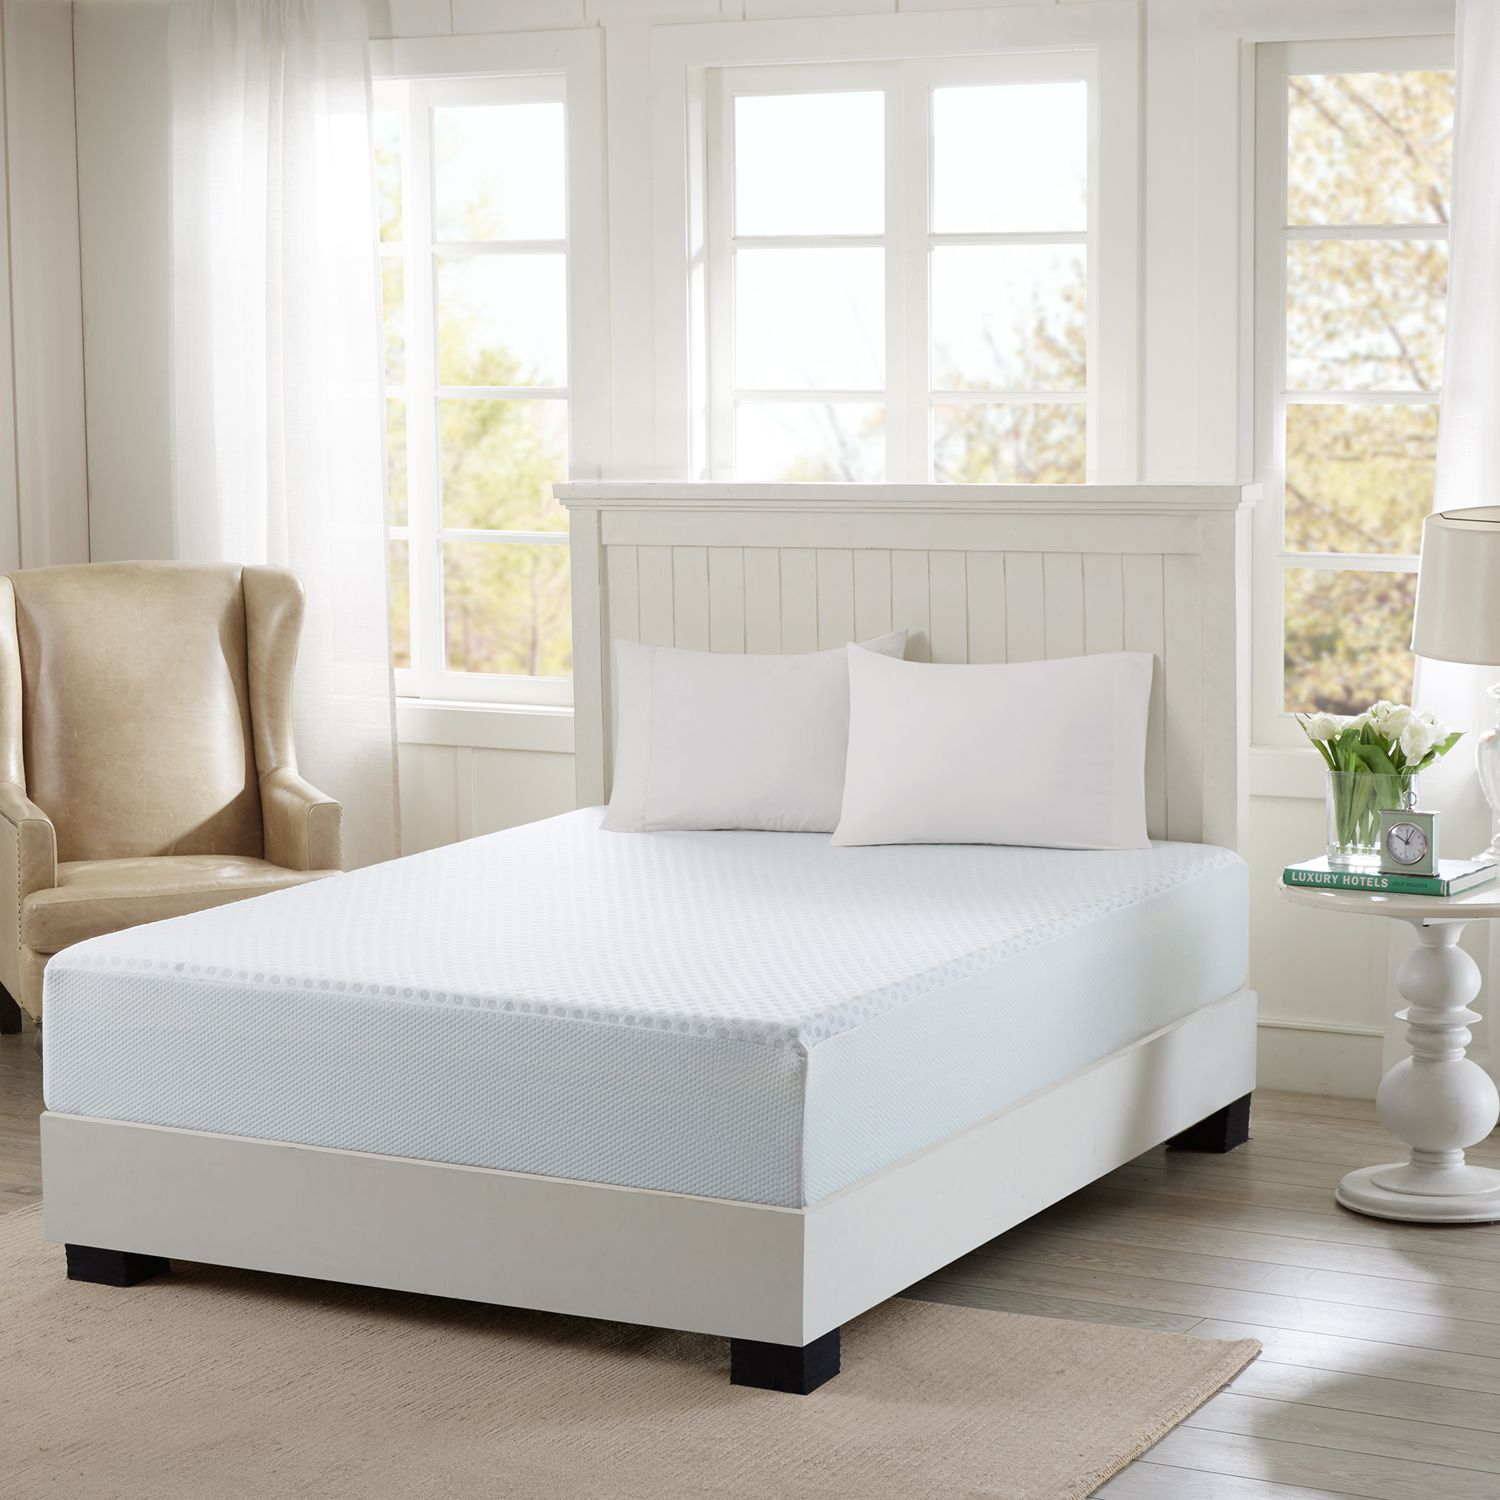 flexapedic by sleep philosophy 12inch gel memory foam mattress with cooling cover